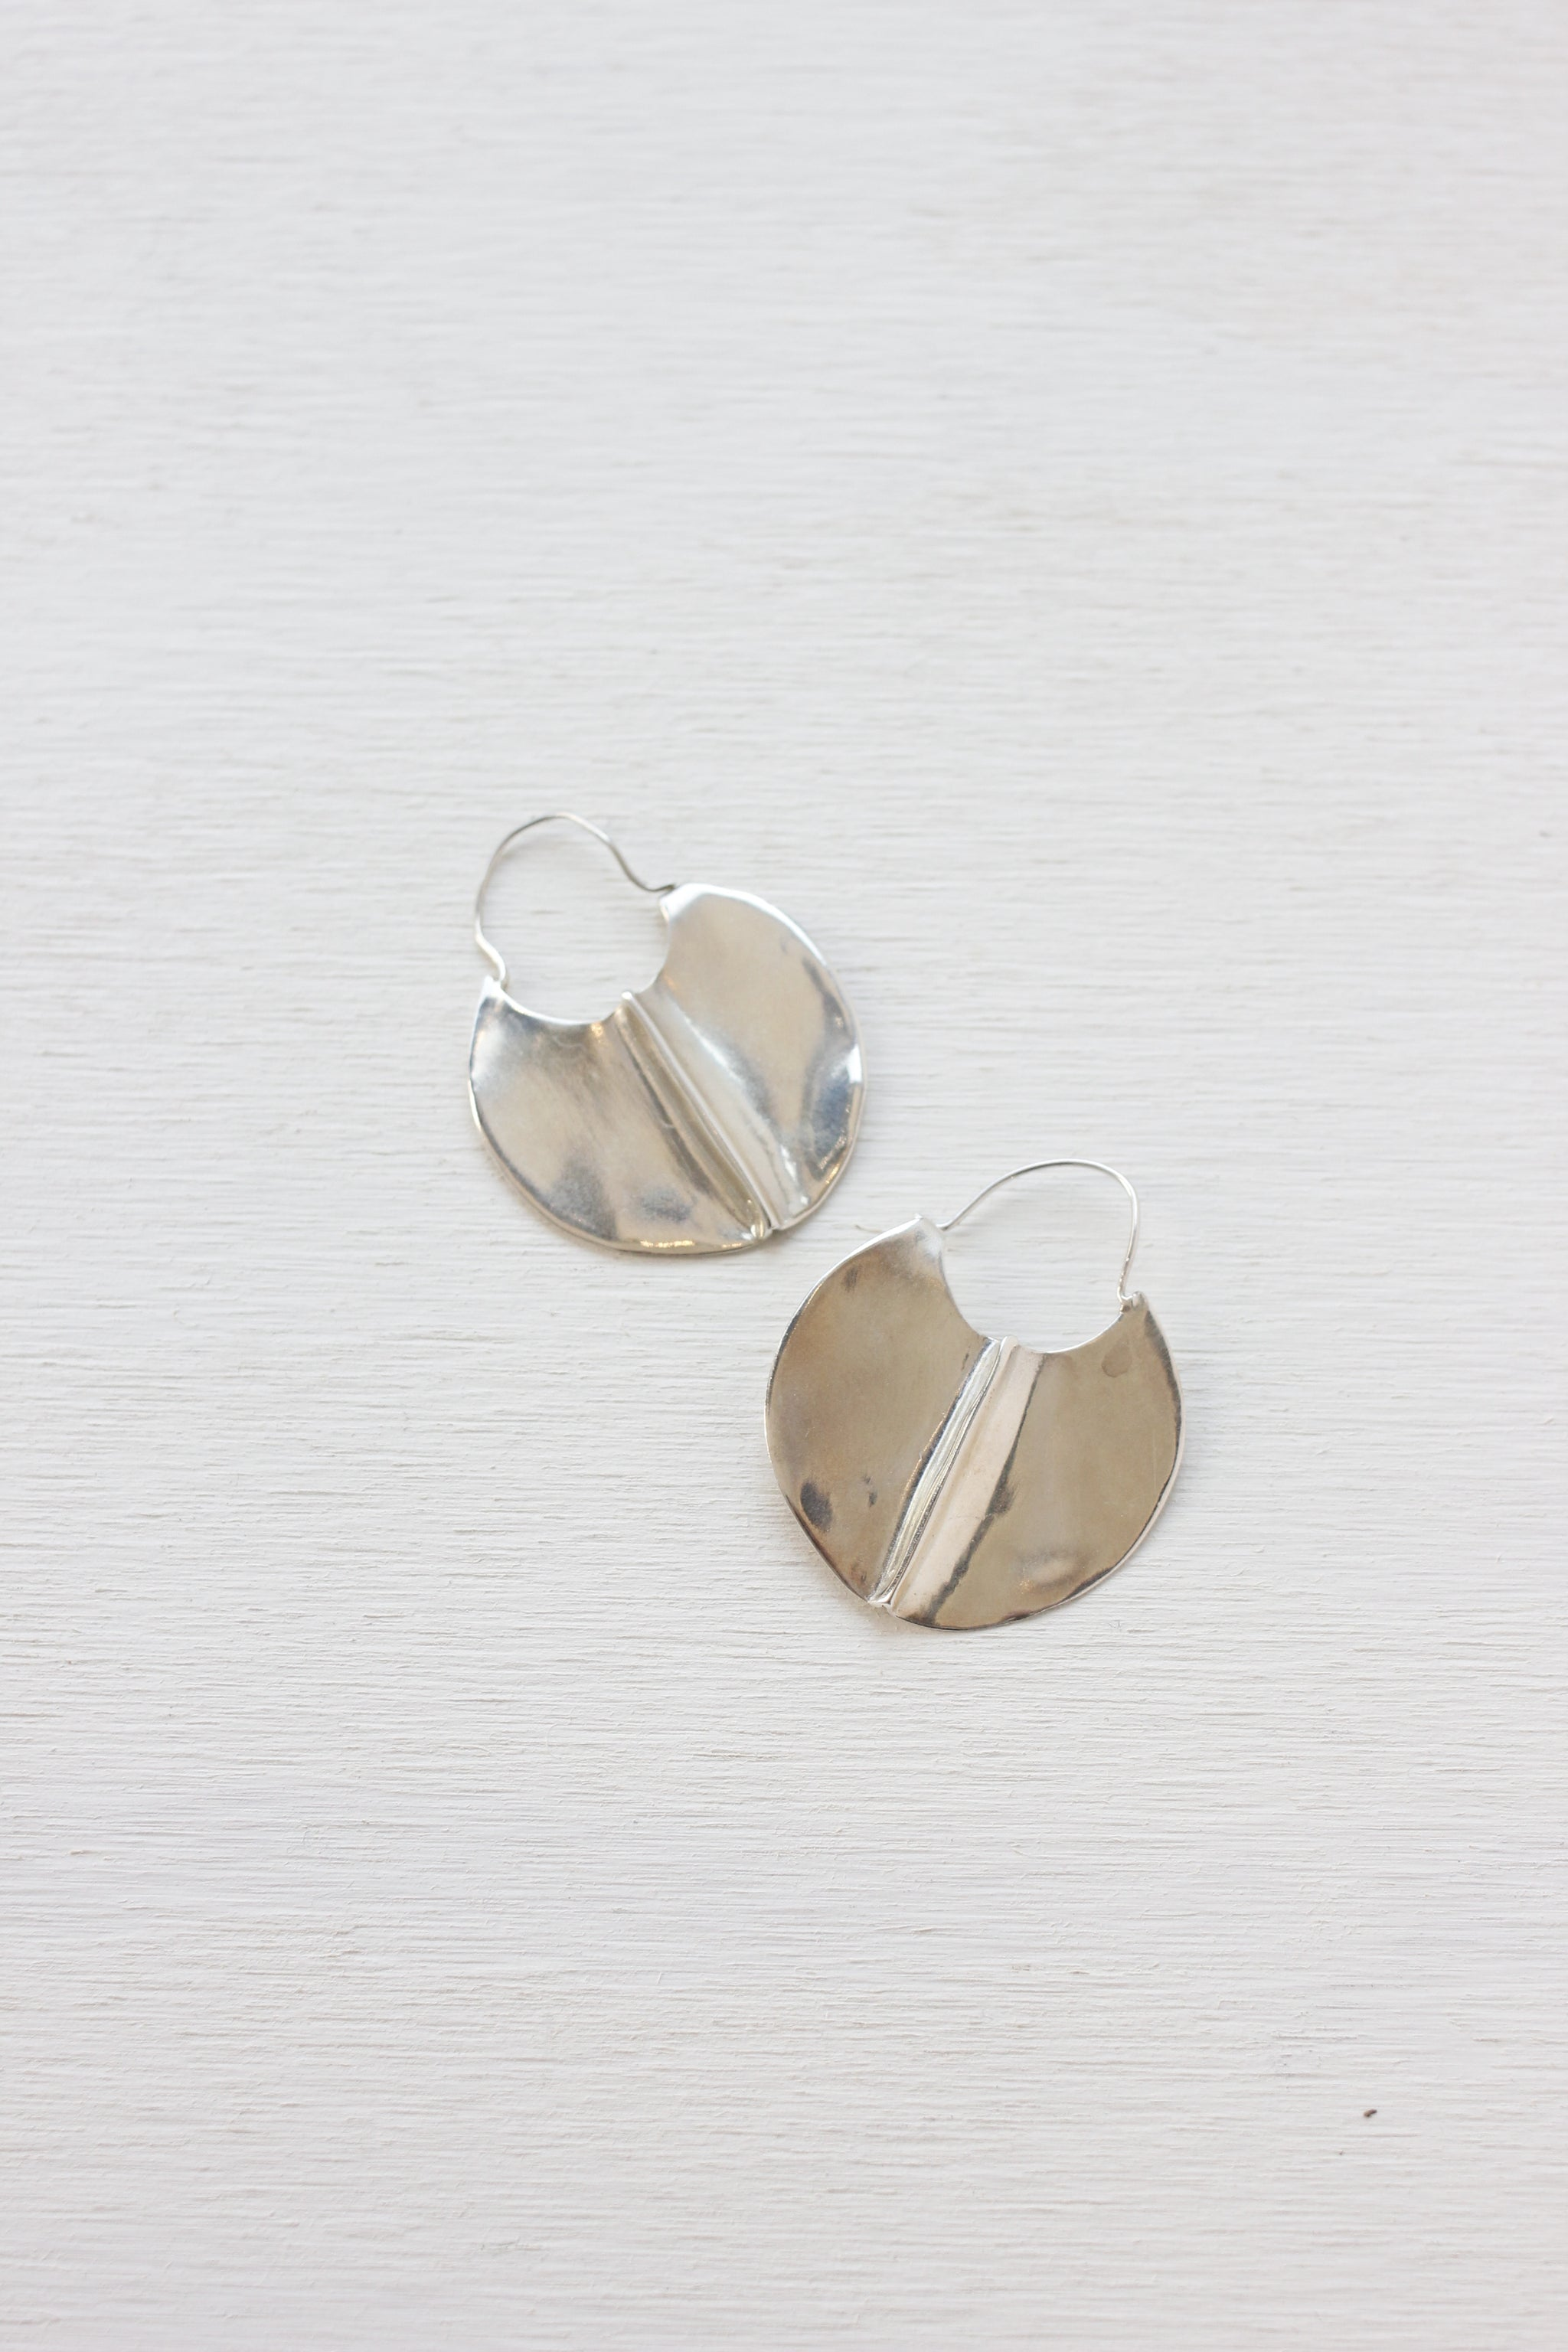 ariana boussard sterling silver earring